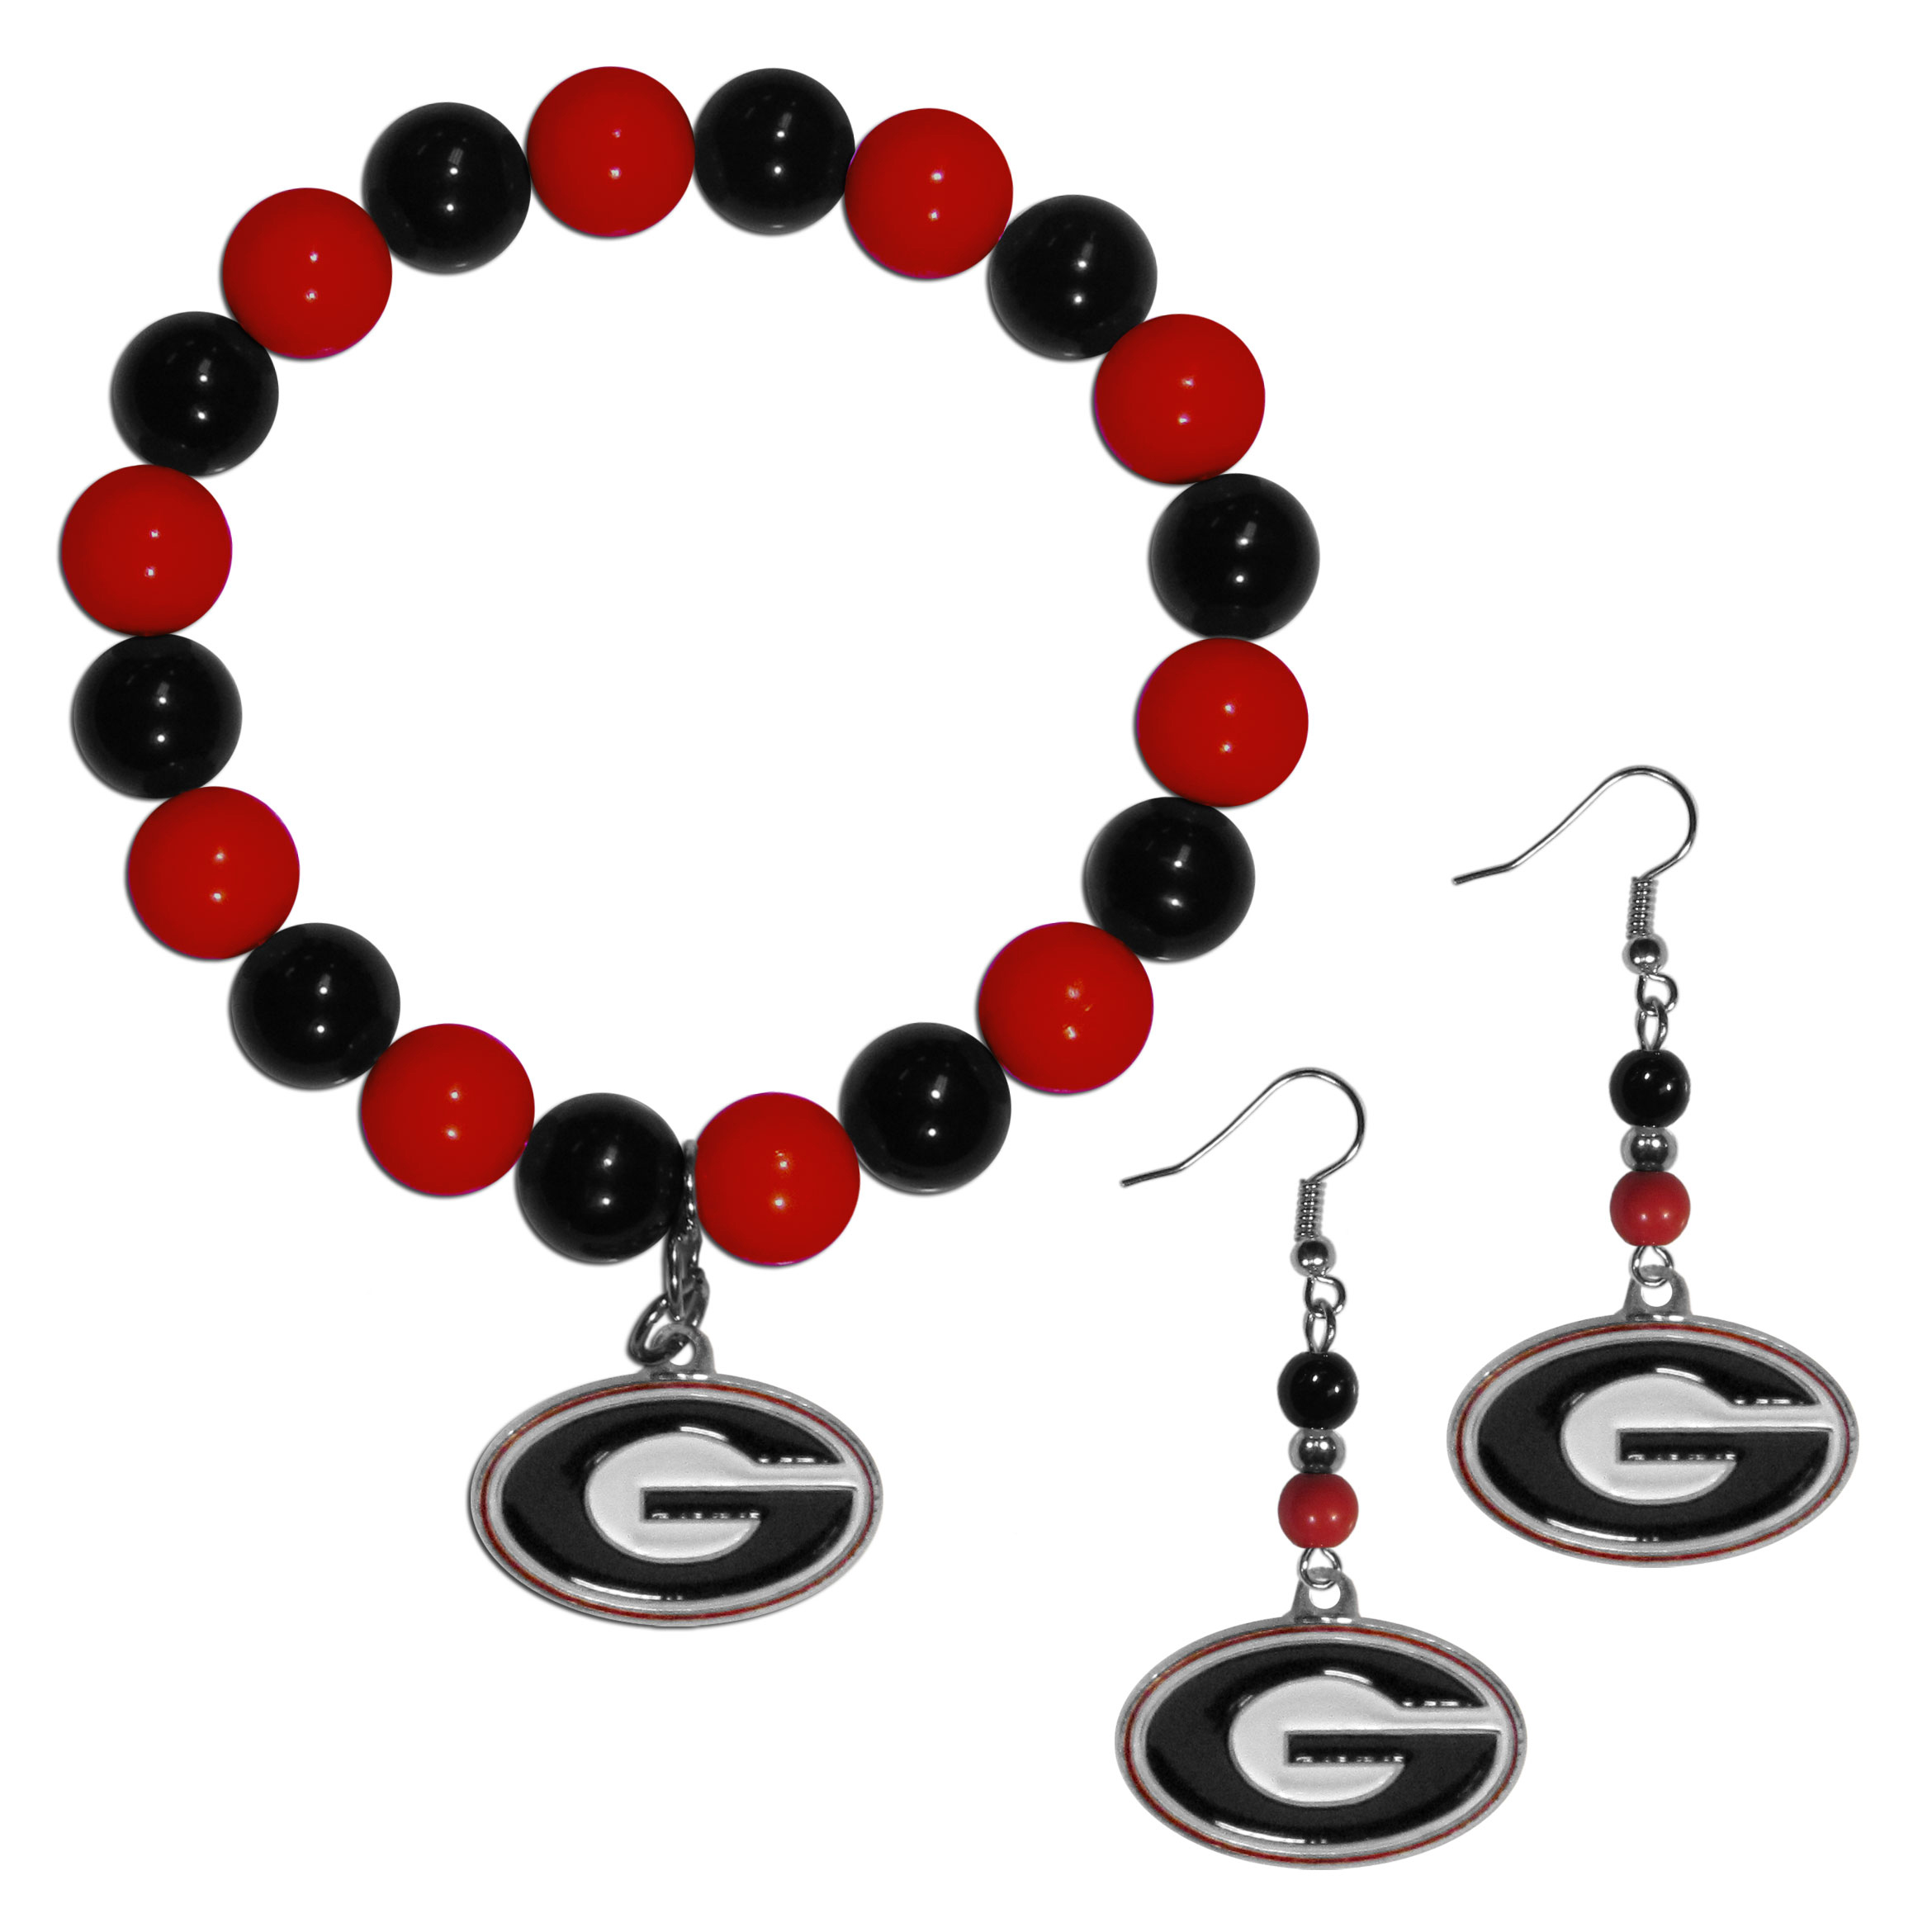 Georgia Bulldogs Fan Bead Earrings and Bracelet Set - This fun and colorful Georgia Bulldogs fan bead jewelry set is fun and casual with eye-catching beads in bright team colors. The fashionable dangle earrings feature a team colored beads that drop down to a carved and enameled charm. The stretch bracelet has larger matching beads that make a striking statement and have a matching team charm. These sassy yet sporty jewelry pieces make a perfect gift for any female fan. Spice up your game-day outfit with these fun colorful earrings and bracelet that are also cute enough for any day.